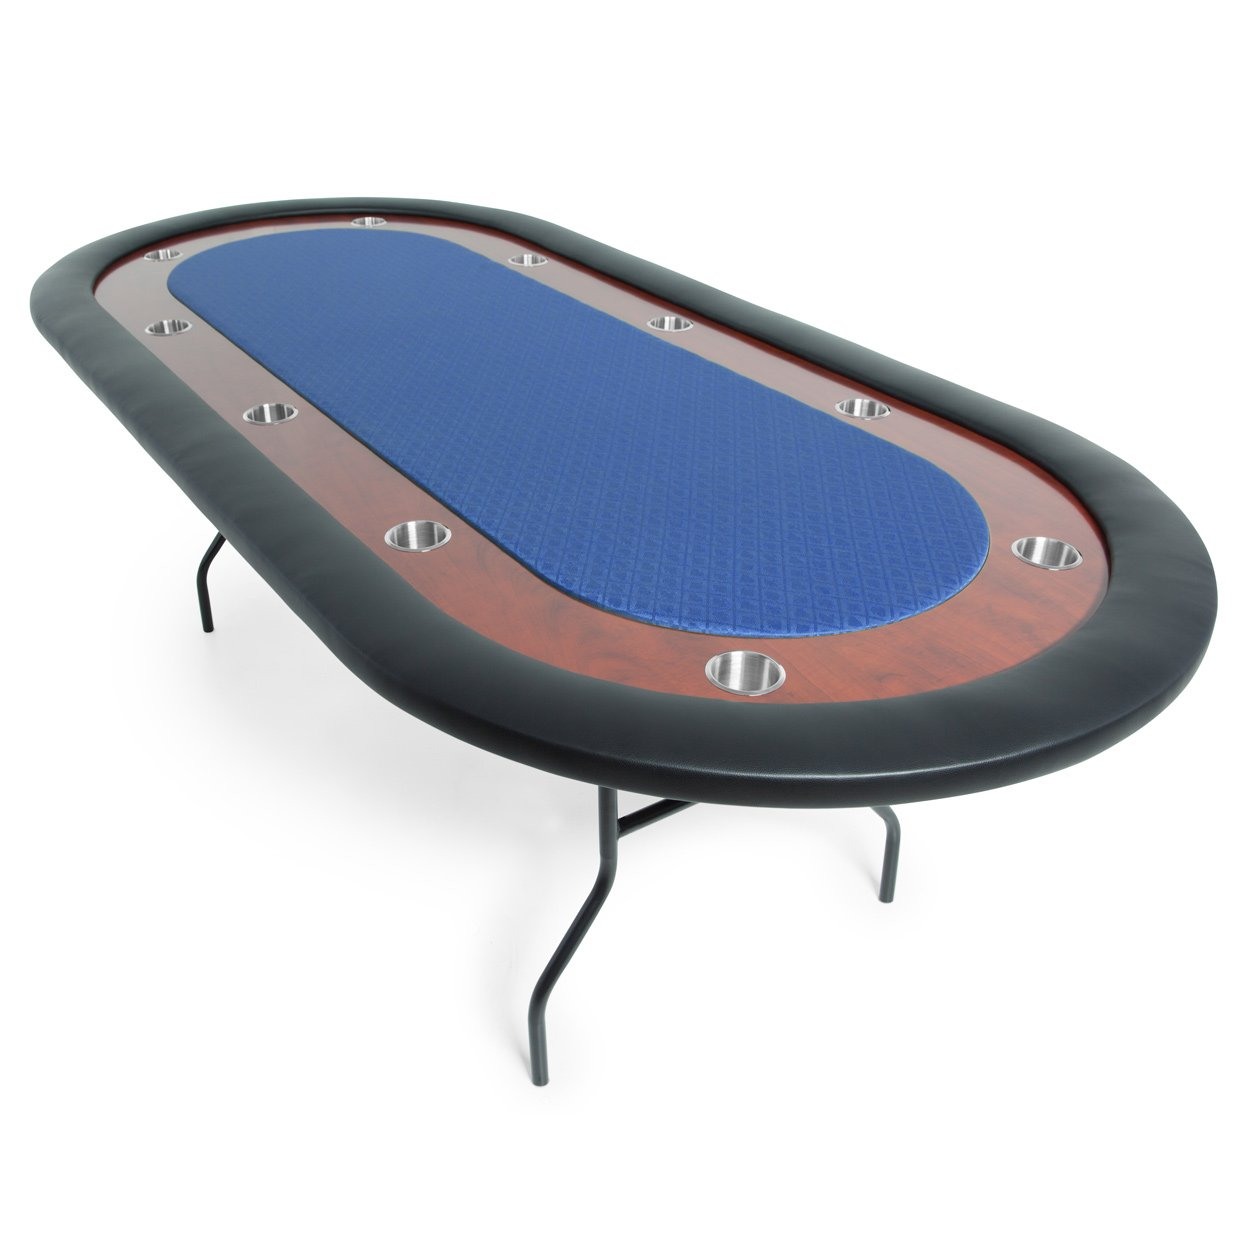 BBO Poker Ultimate Folding Poker Table for 10 Players with Blue Speed Cloth Playing Surface, 92 x 44-Inch Oval by BBO Poker